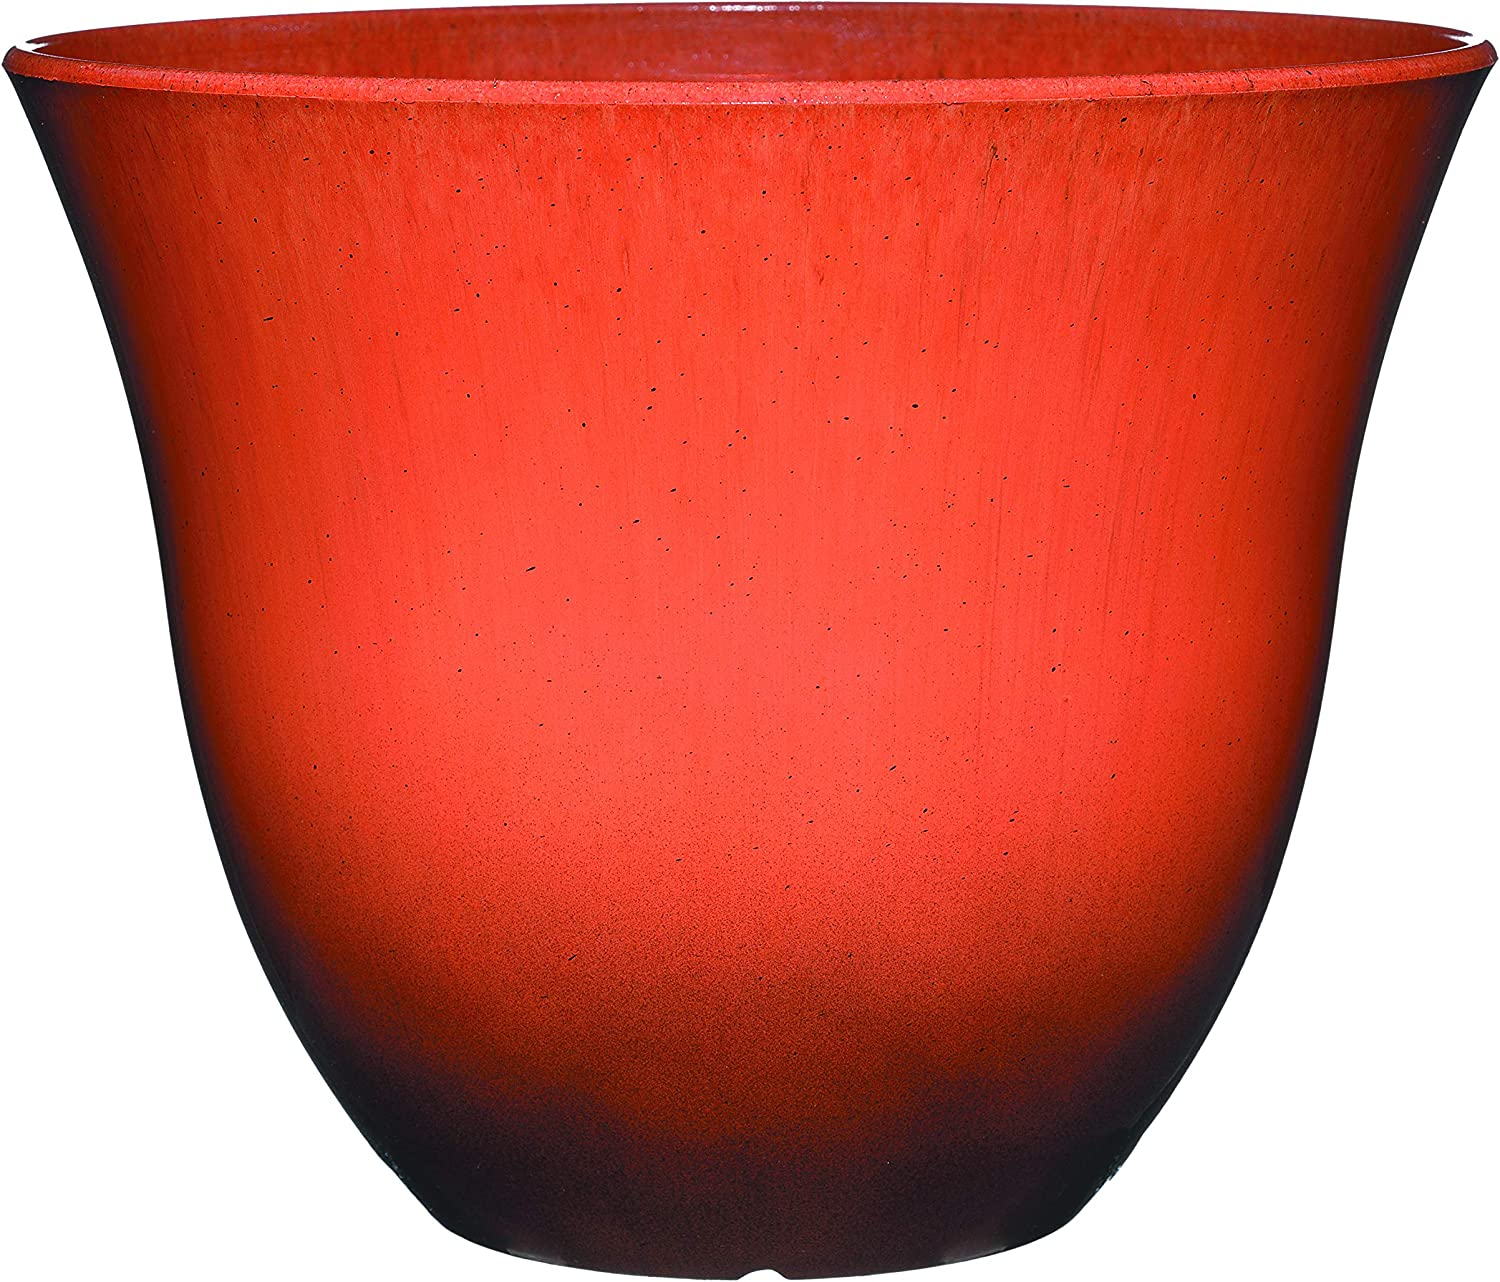 Classic Home and Garden 553-138R Honeysuckle Patio Pot Planter, 15 Inch, Ember